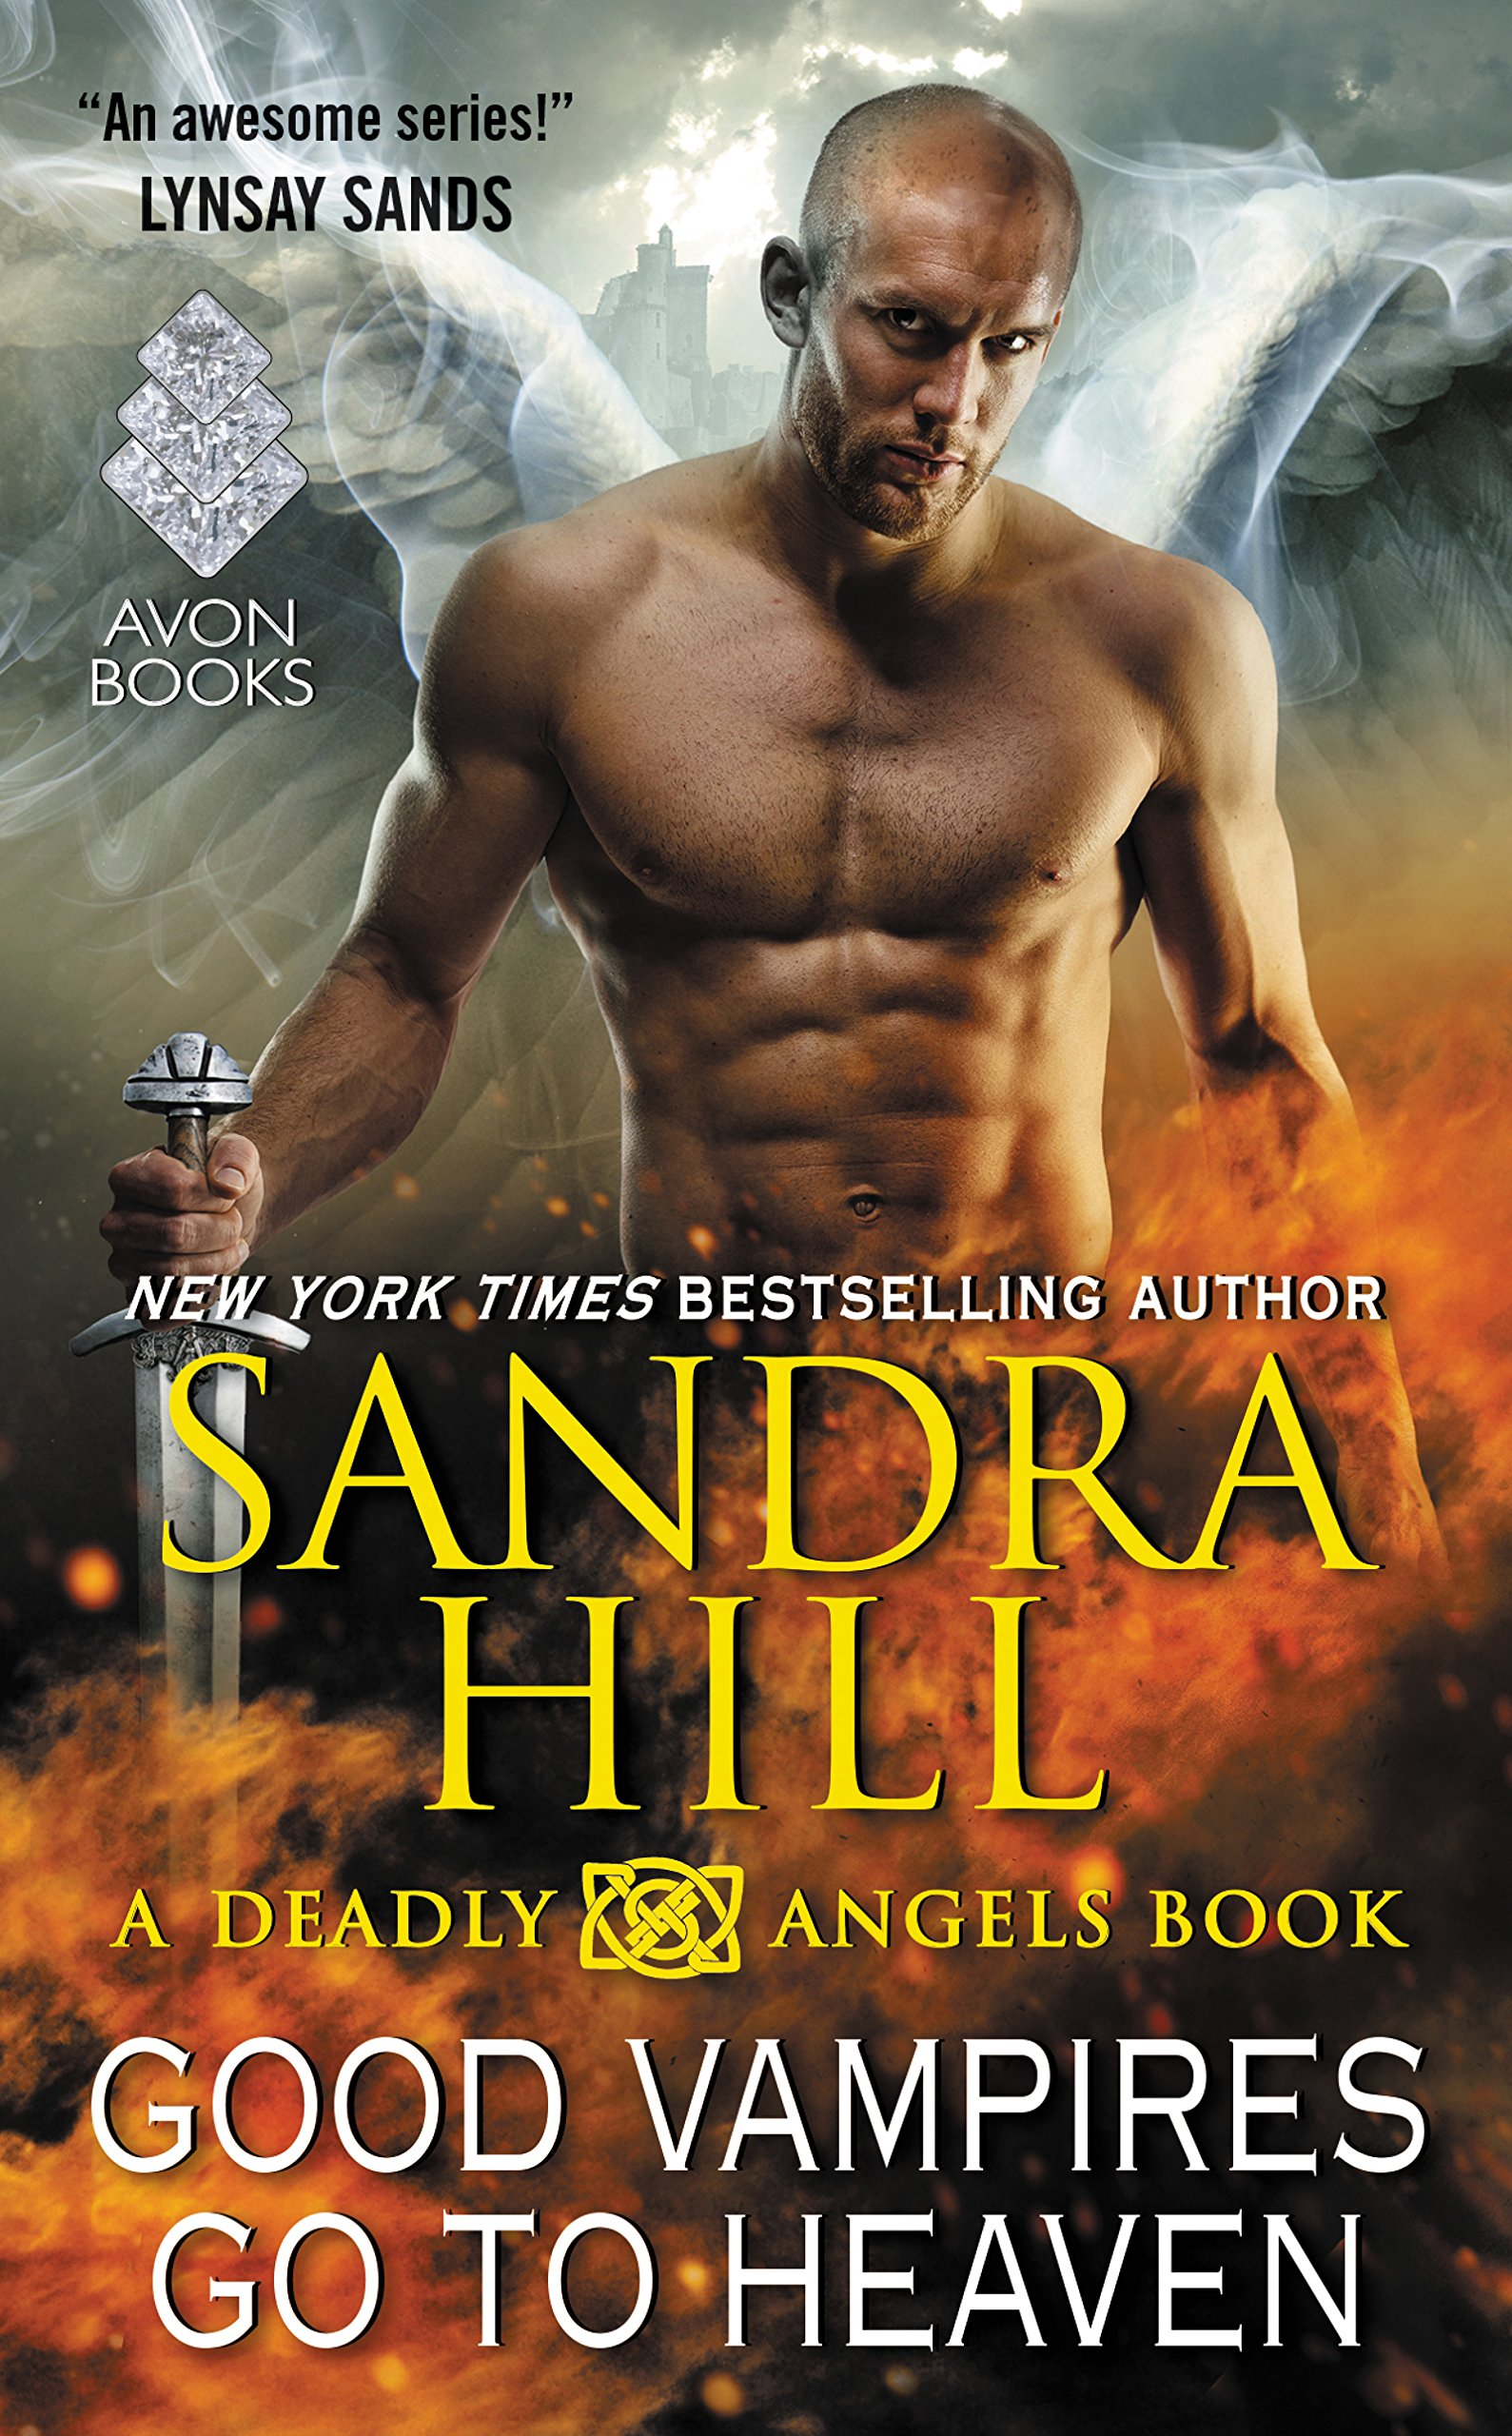 Good Vampires Go To Heaven: A Deadly Angels Book: Sandra Hill:  9780062356567: Amazon: Books